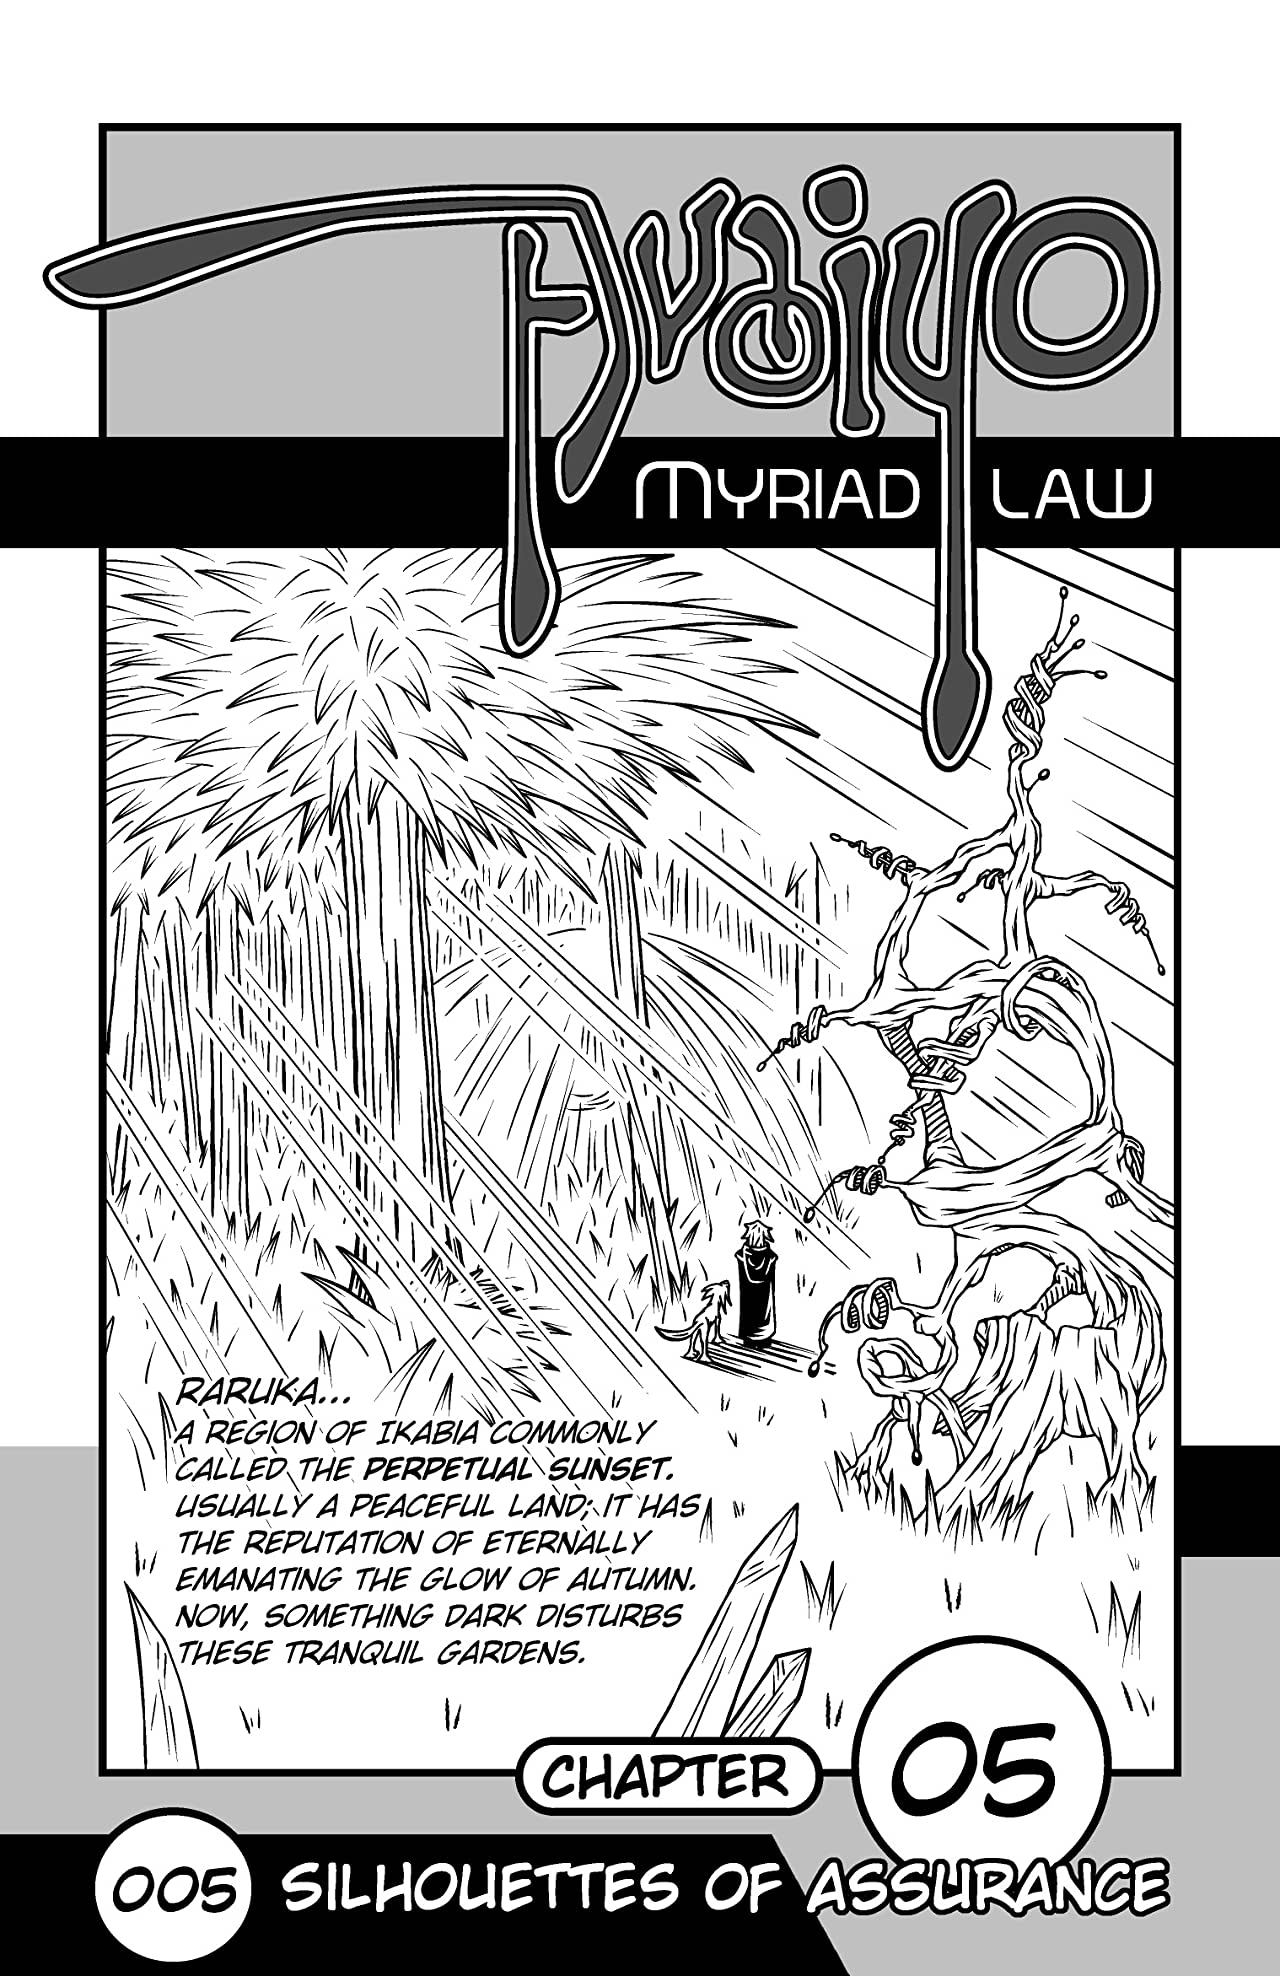 Avaiyo: Myriad Law #005